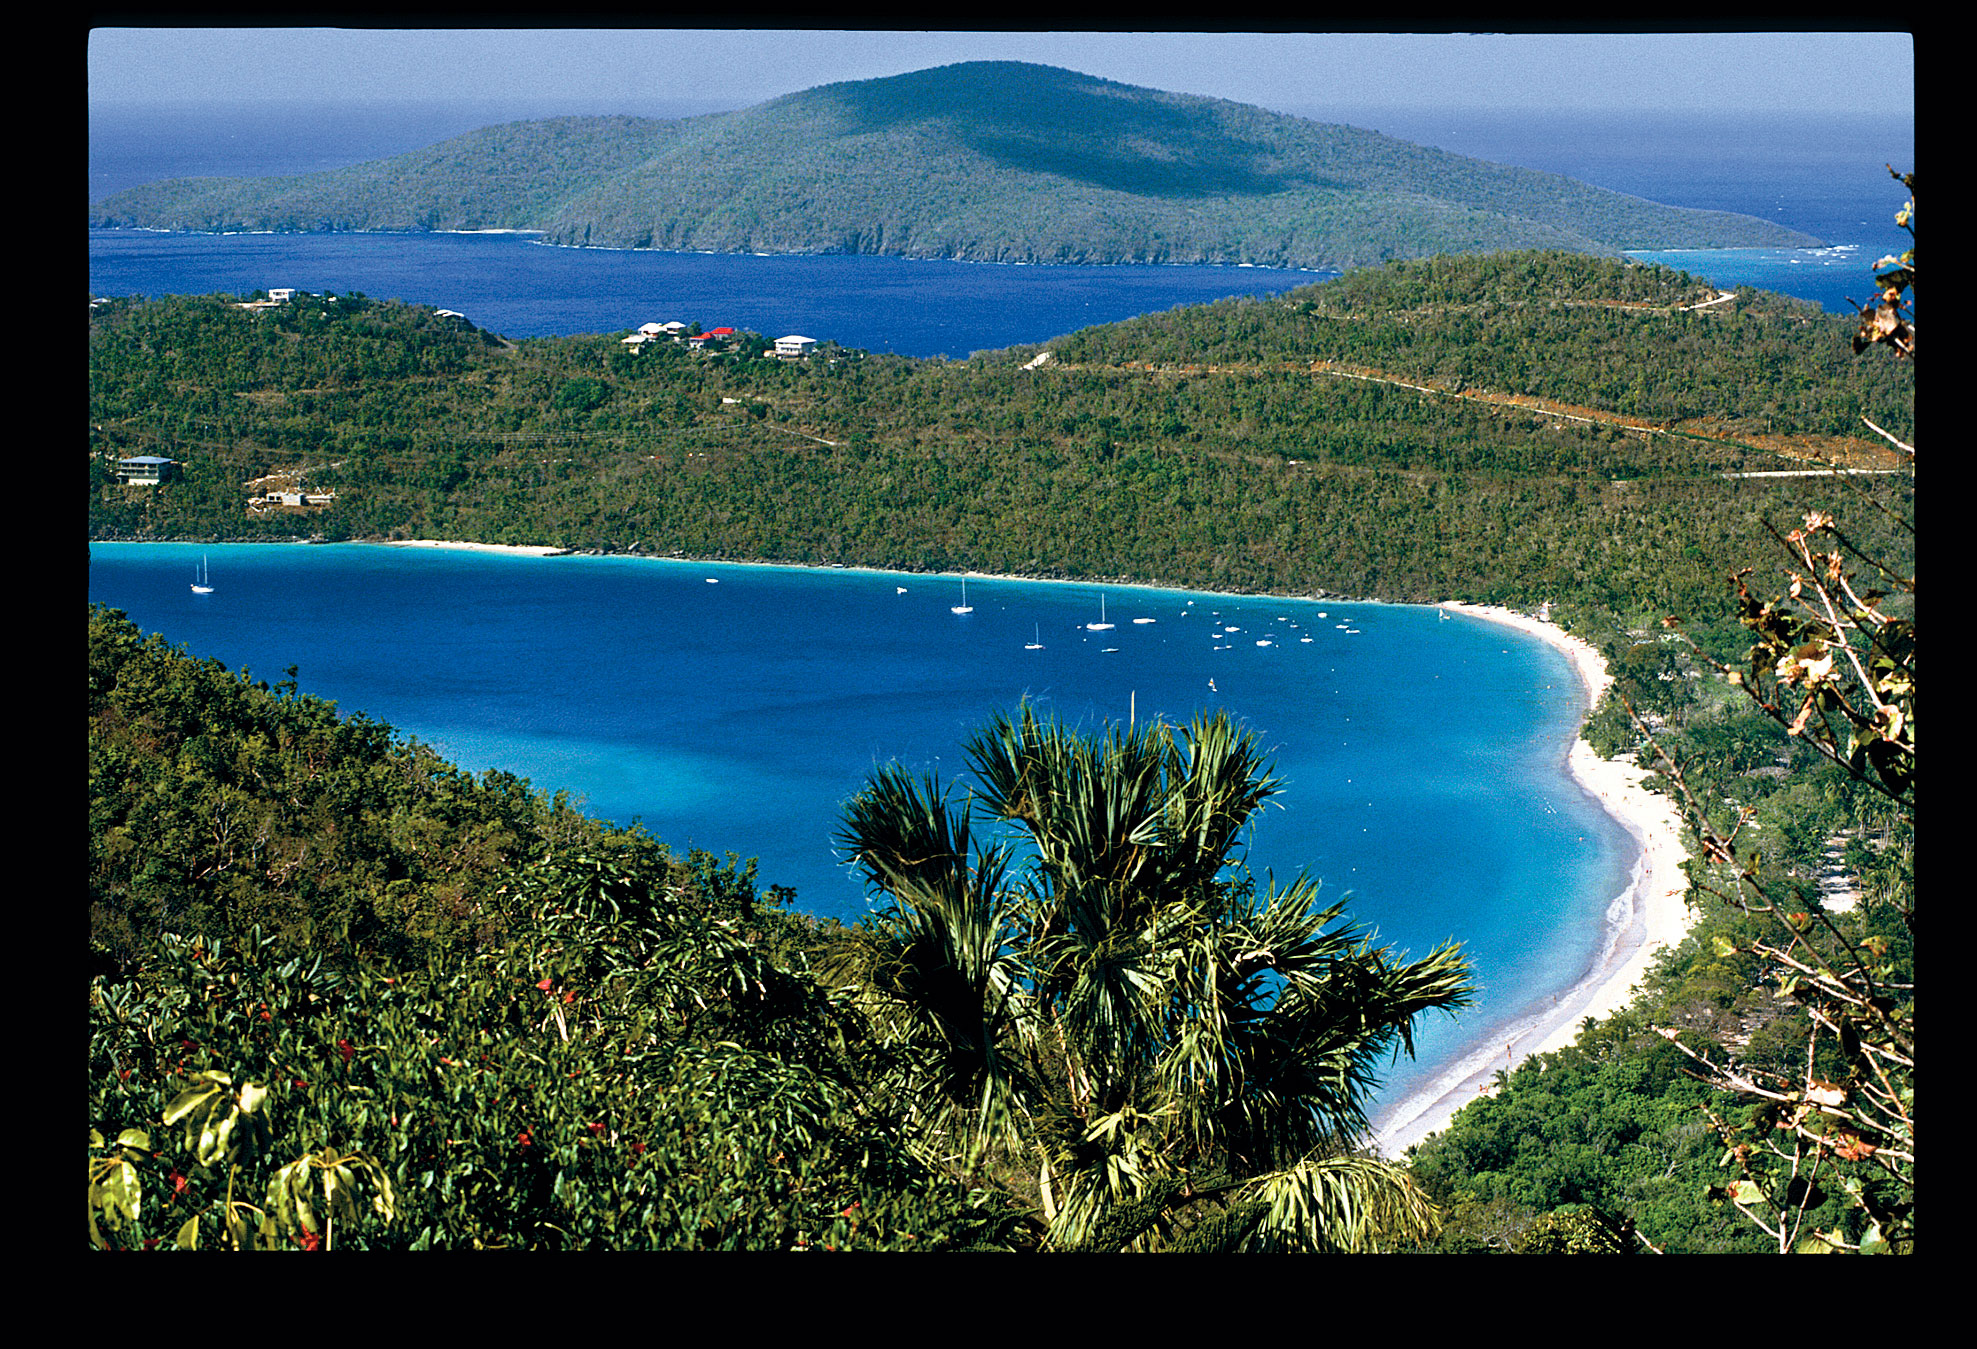 St. Thomas: U.S. Virgin Islands